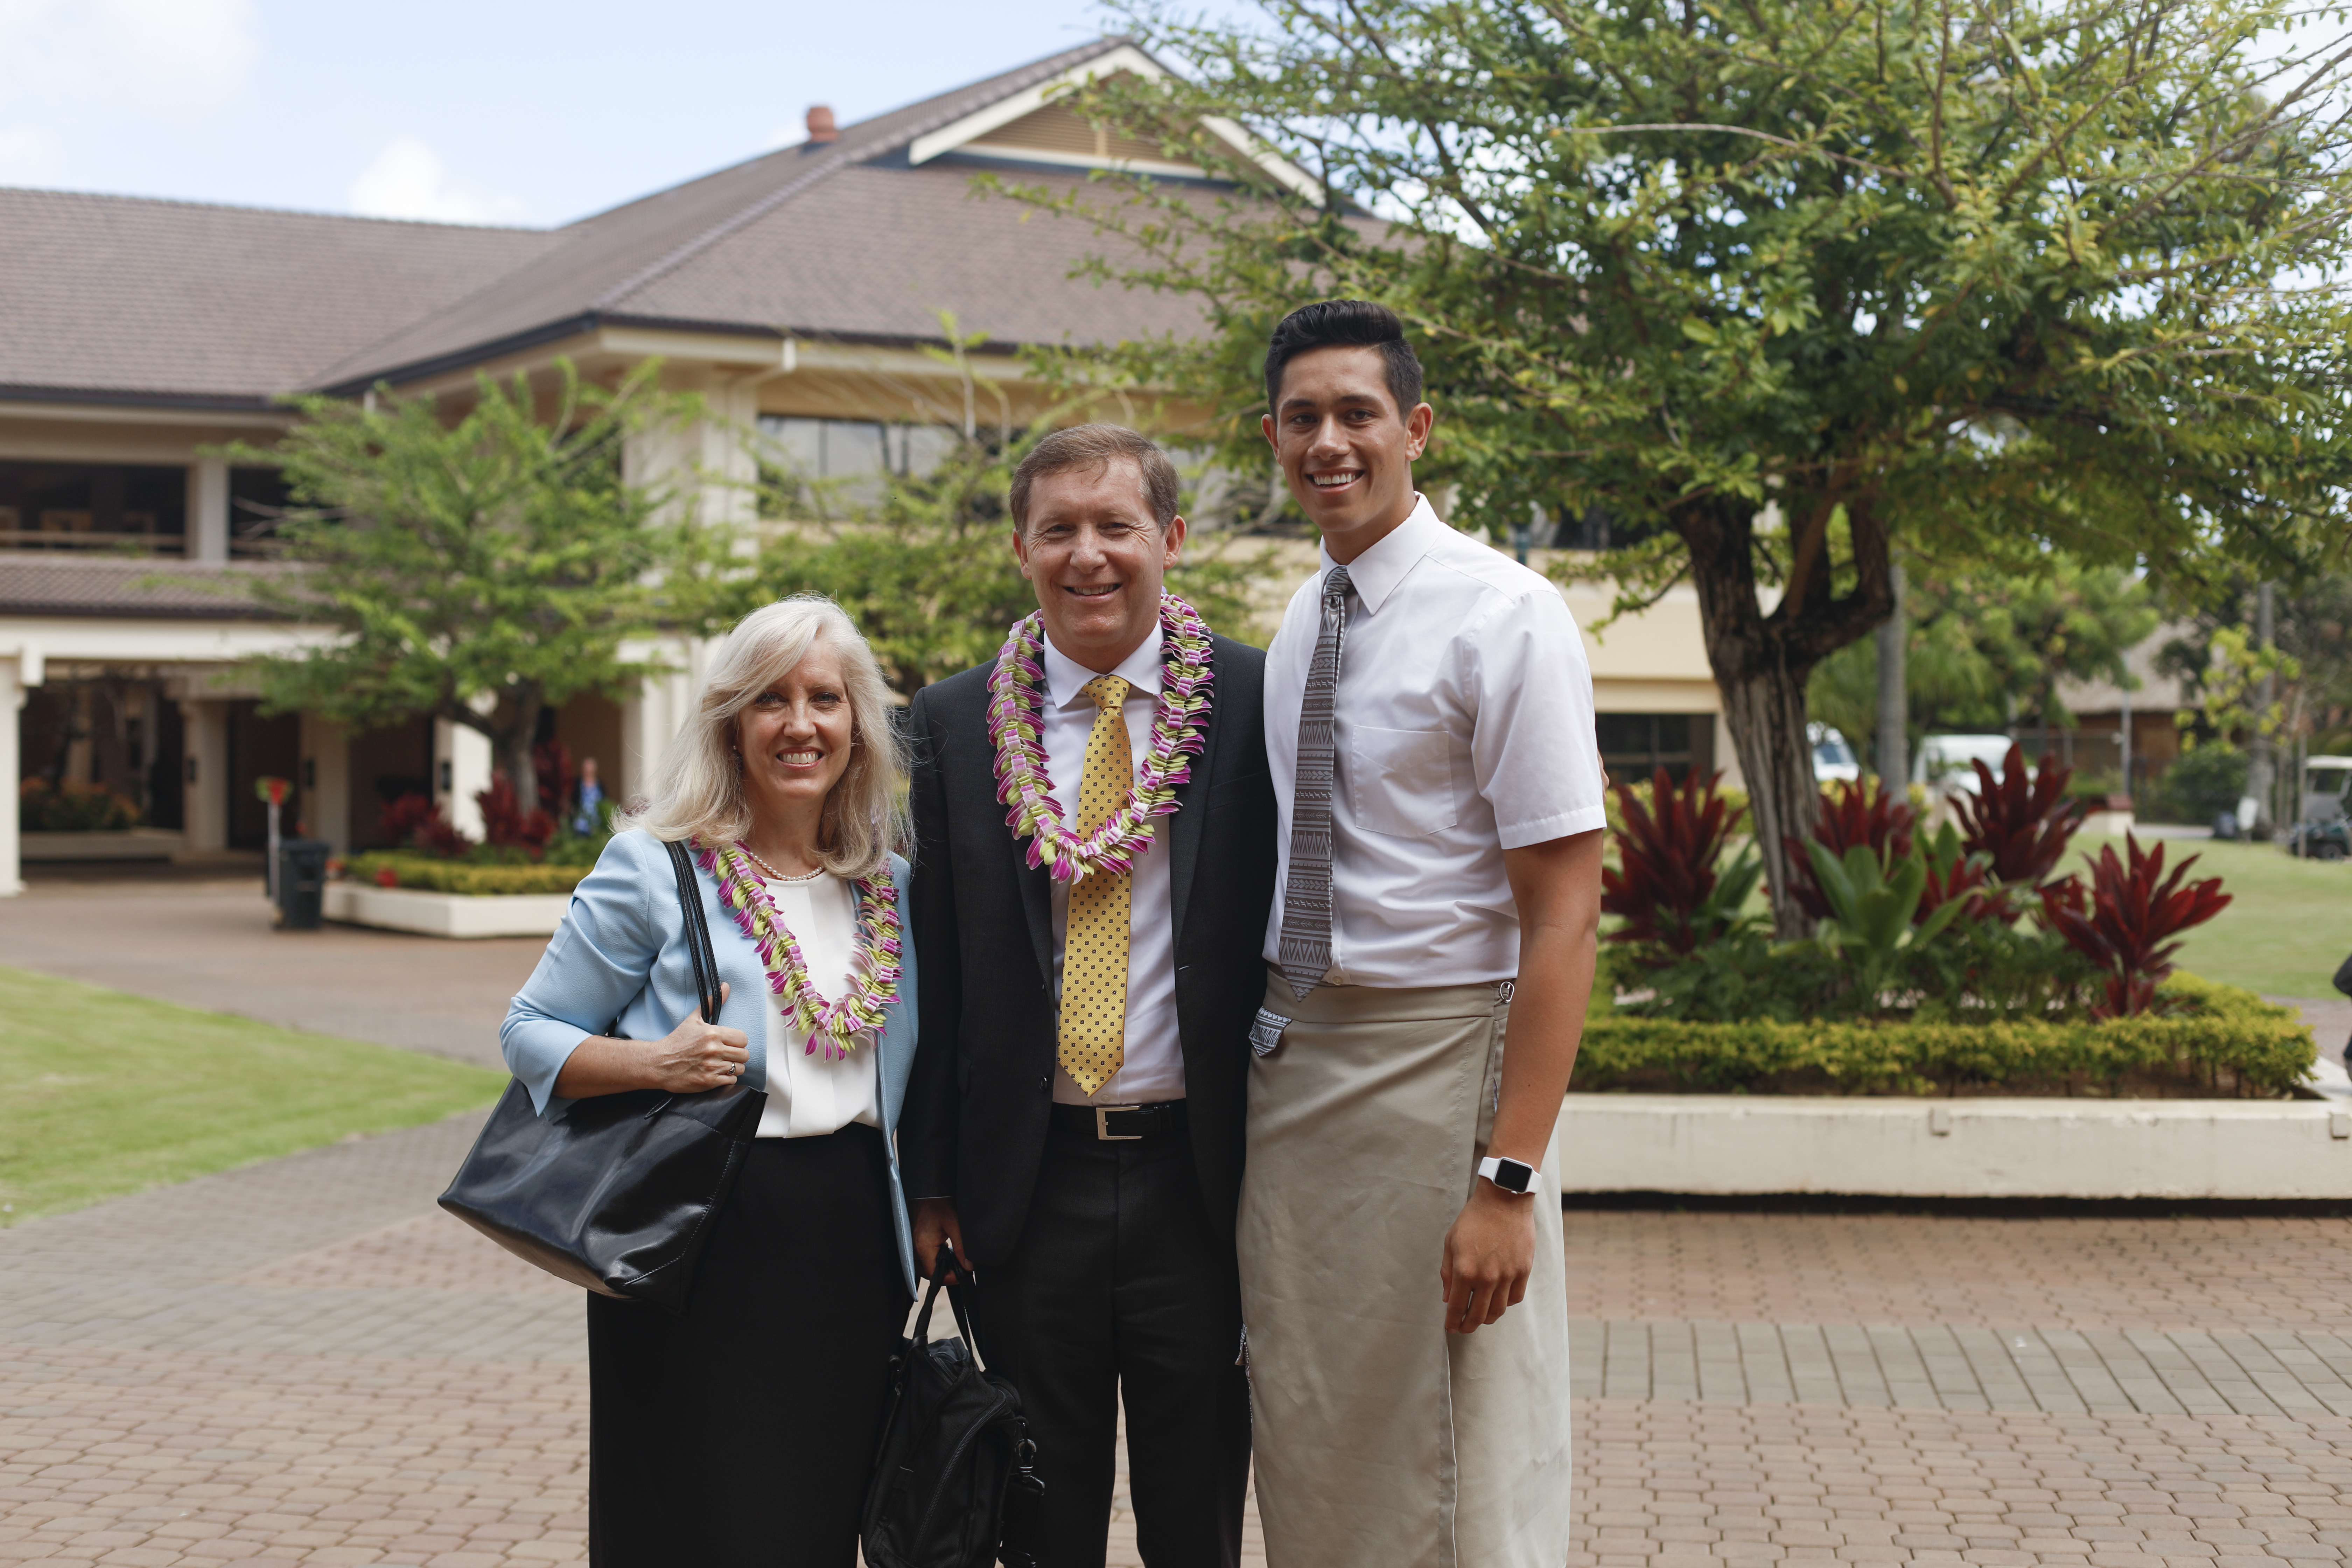 Elder L. Todd Budge and his wife, Lori, stand with their nephew, Jensen Ama, at BYU-Hawaii following Elder Budge's devotional address on Tuesday, Sept. 24, 2019.